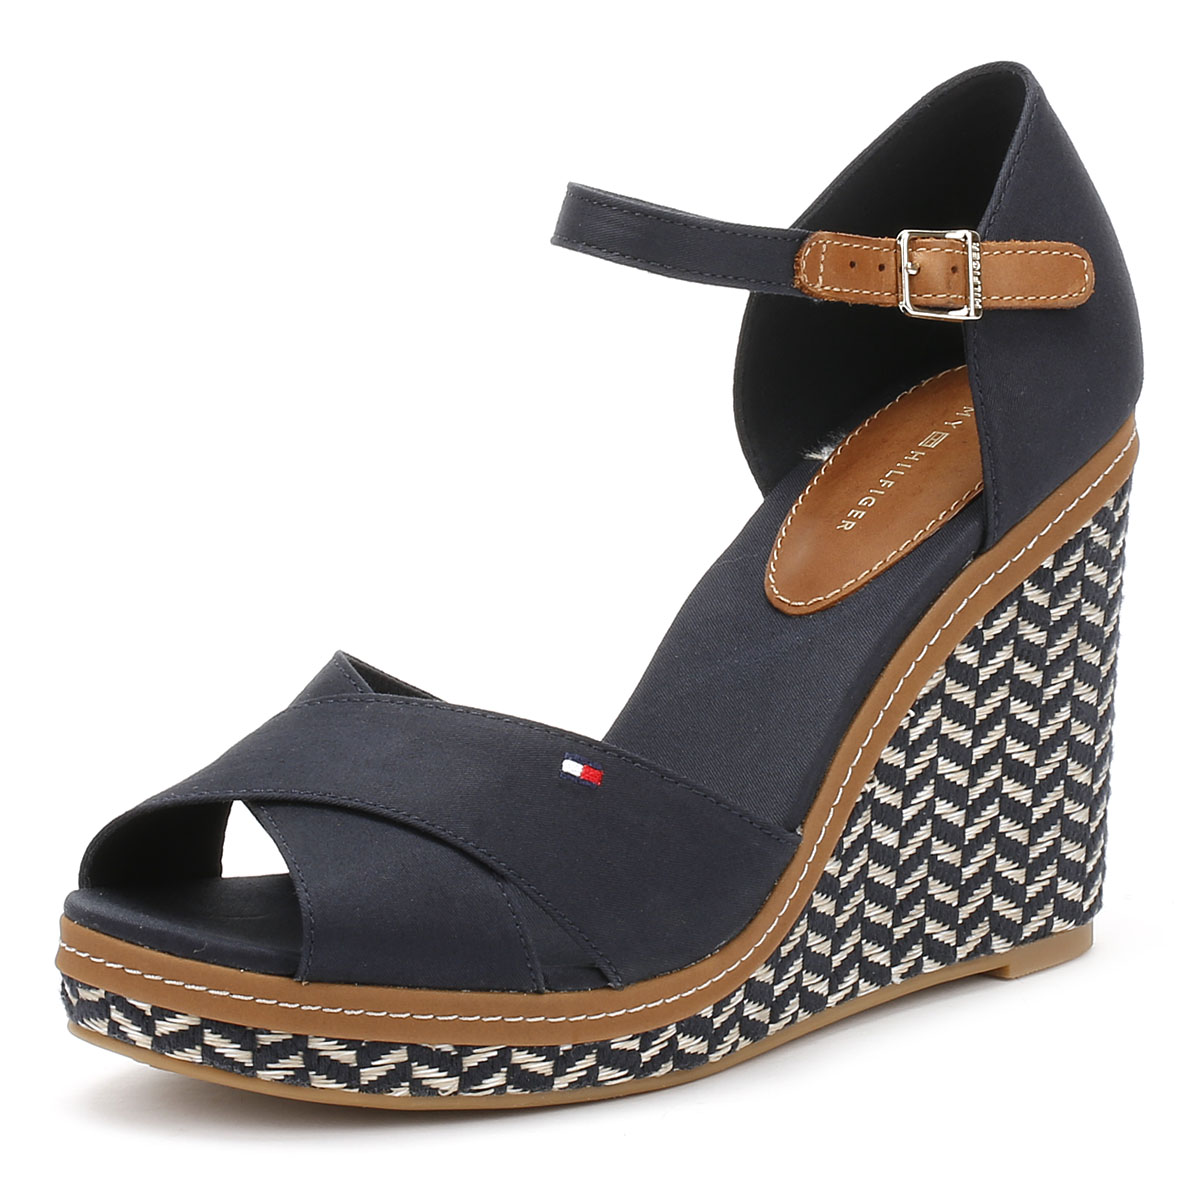 ef27faabd02 Details about Tommy Hilfiger Womens Wedge Sandals, Midnight 43D Textile,  High Heel Shoes